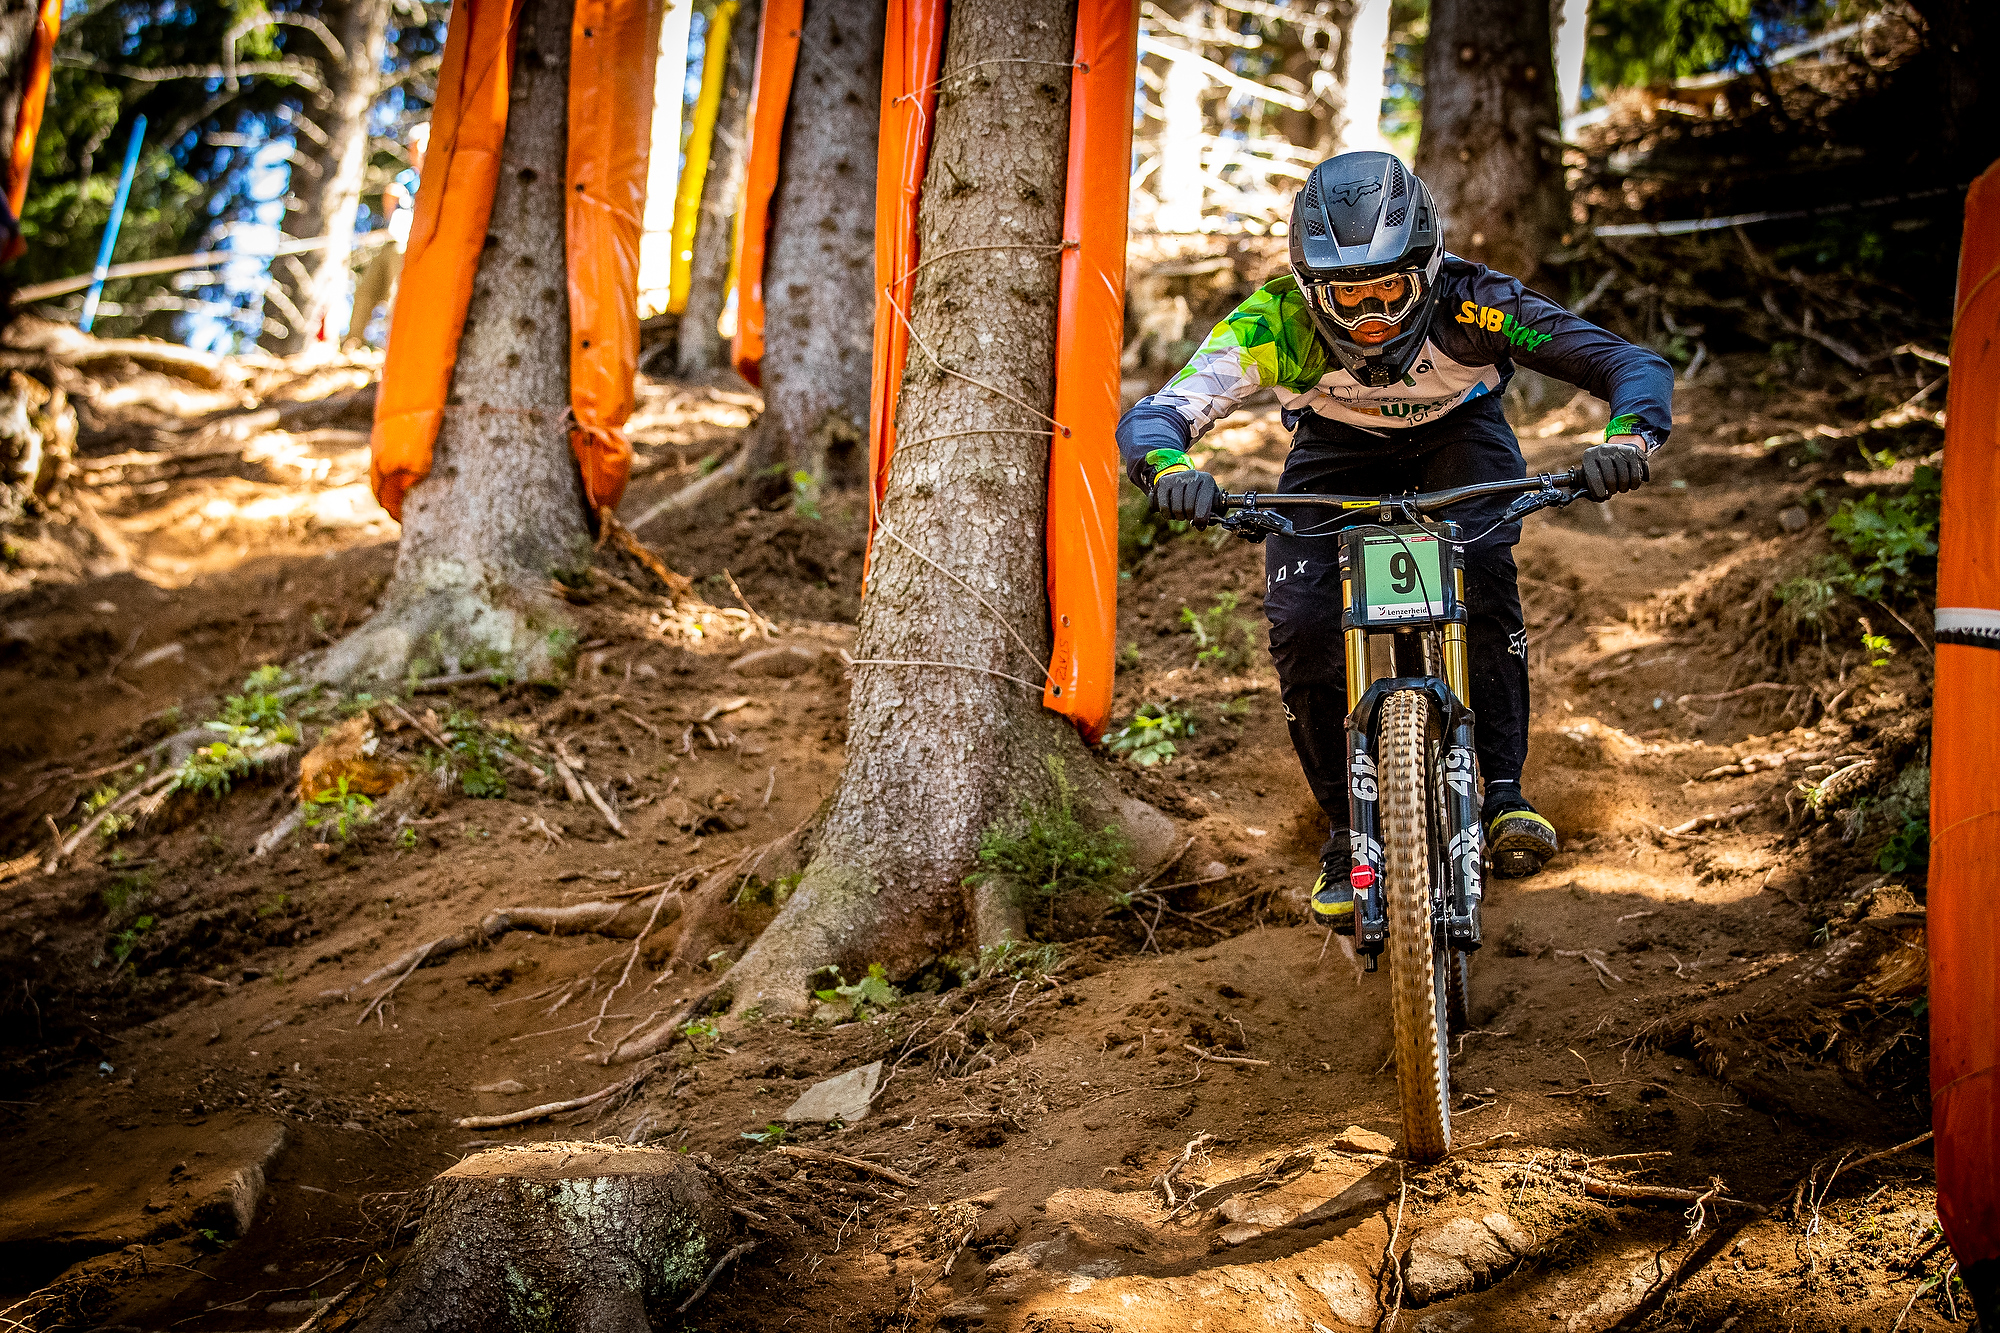 Tuhoto backed up his win in Val di Sole with a 3rd place at the Lenzerheide World Cup a week later. PC Sven Martin